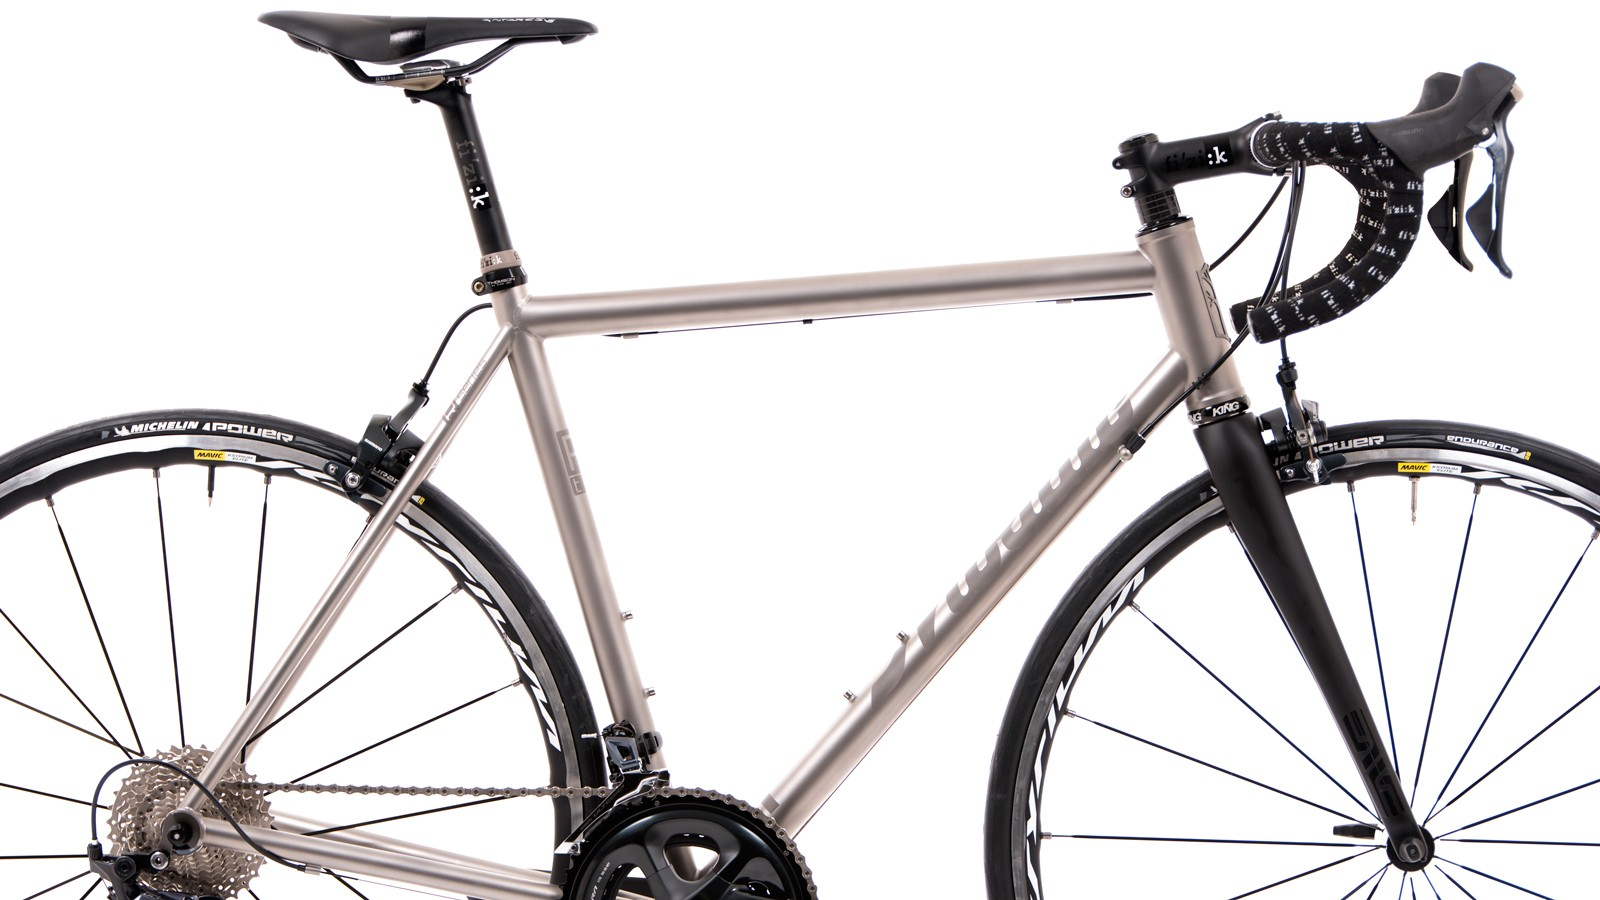 Every Mosaic titanium frame is built in Boulder, Colorado